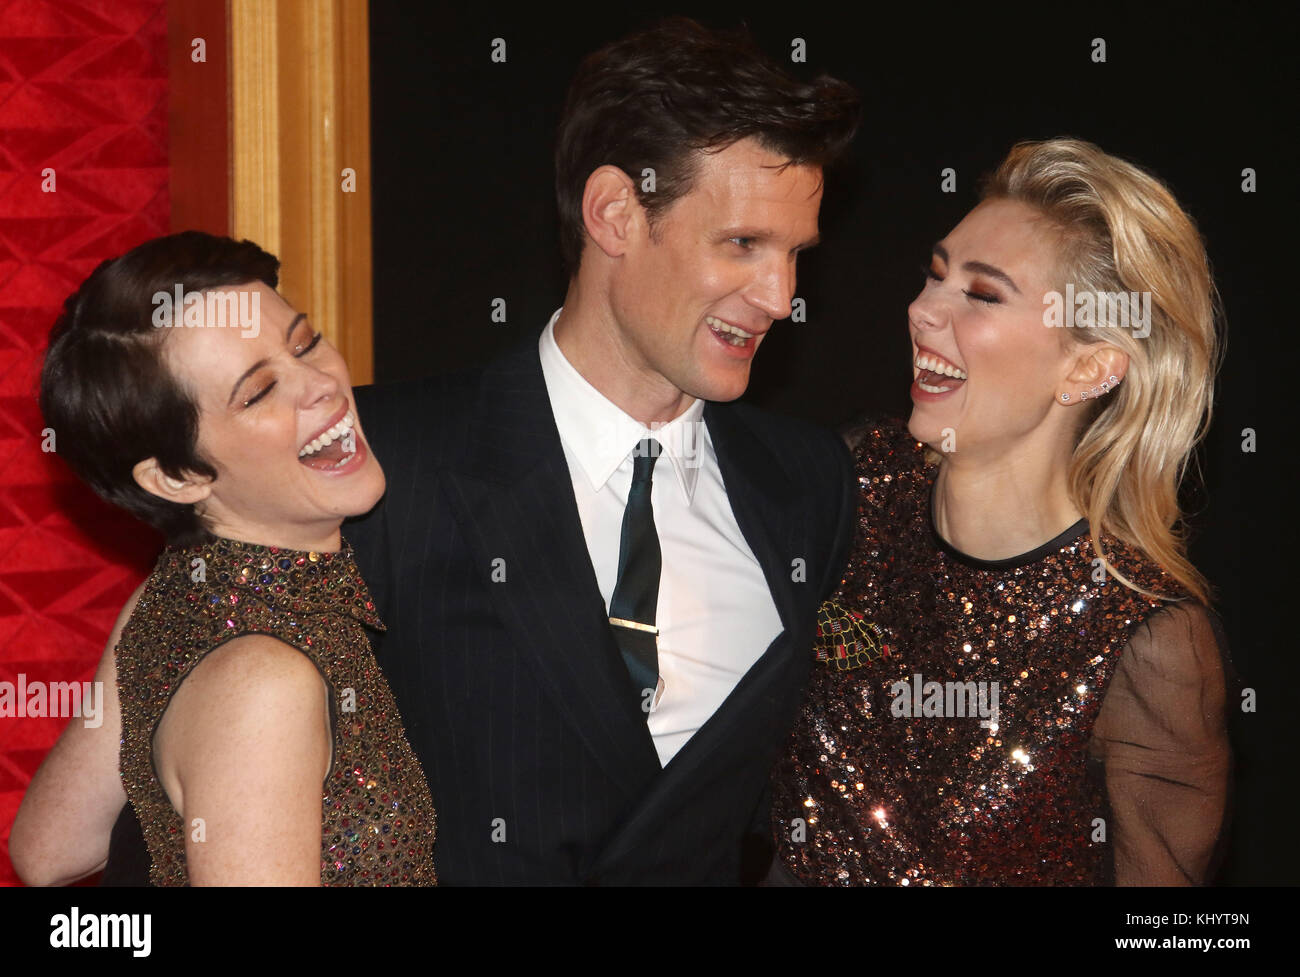 London, UK. 21st Nov, 2017. Nov 21, 2017 - Claire Foy, Matt Smith and Vanessa Kirby attending 'The Crown' - Stock Image